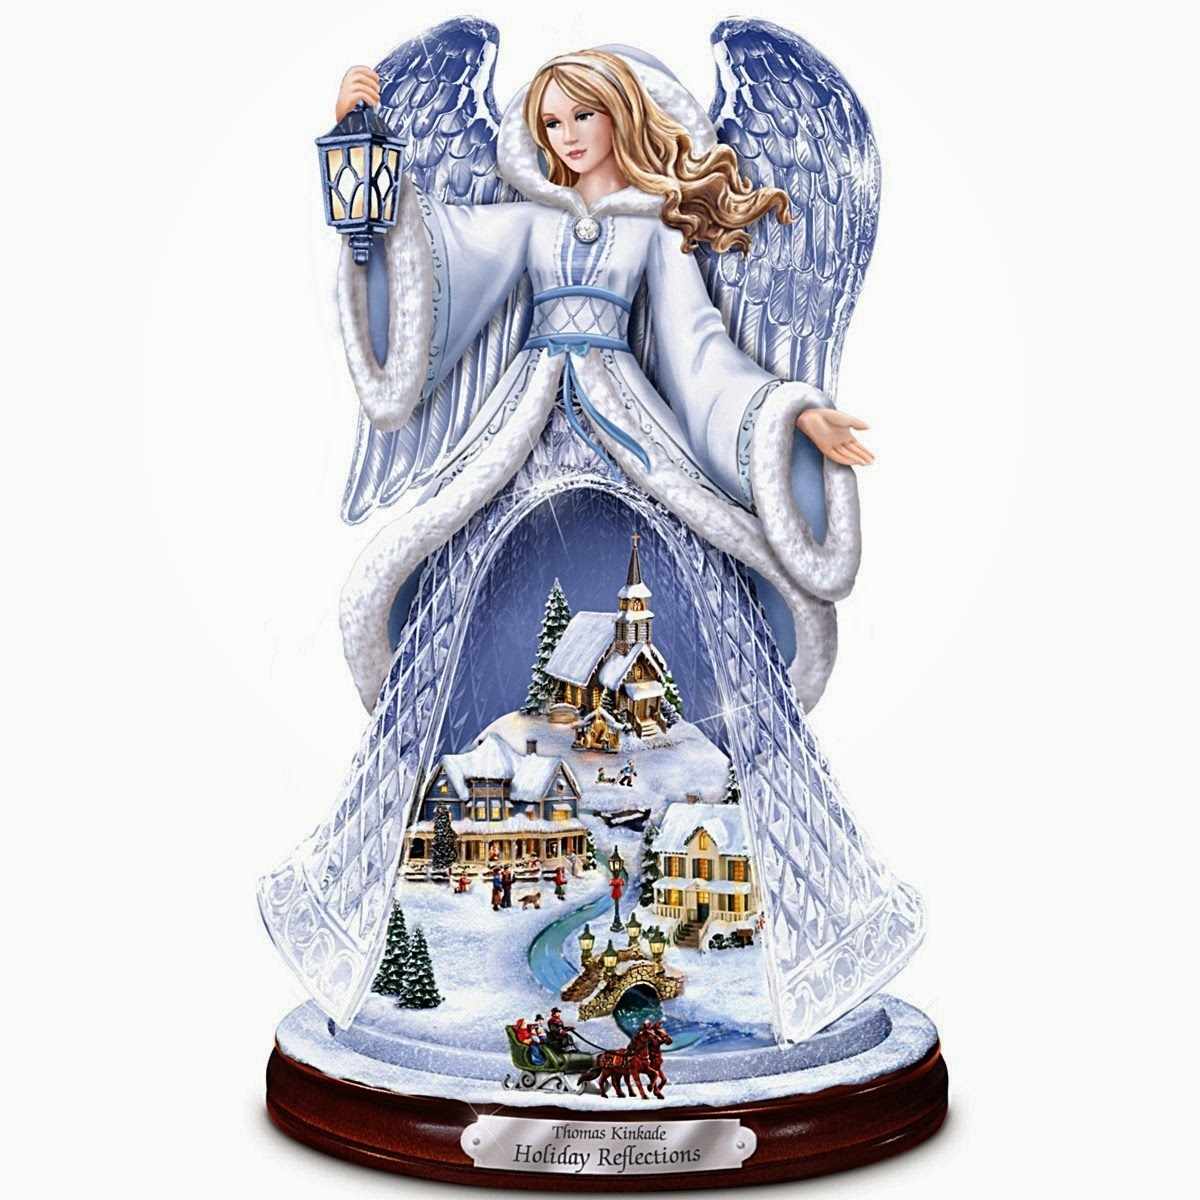 thomas kinkade online catalog - Christmas Angel Figurines